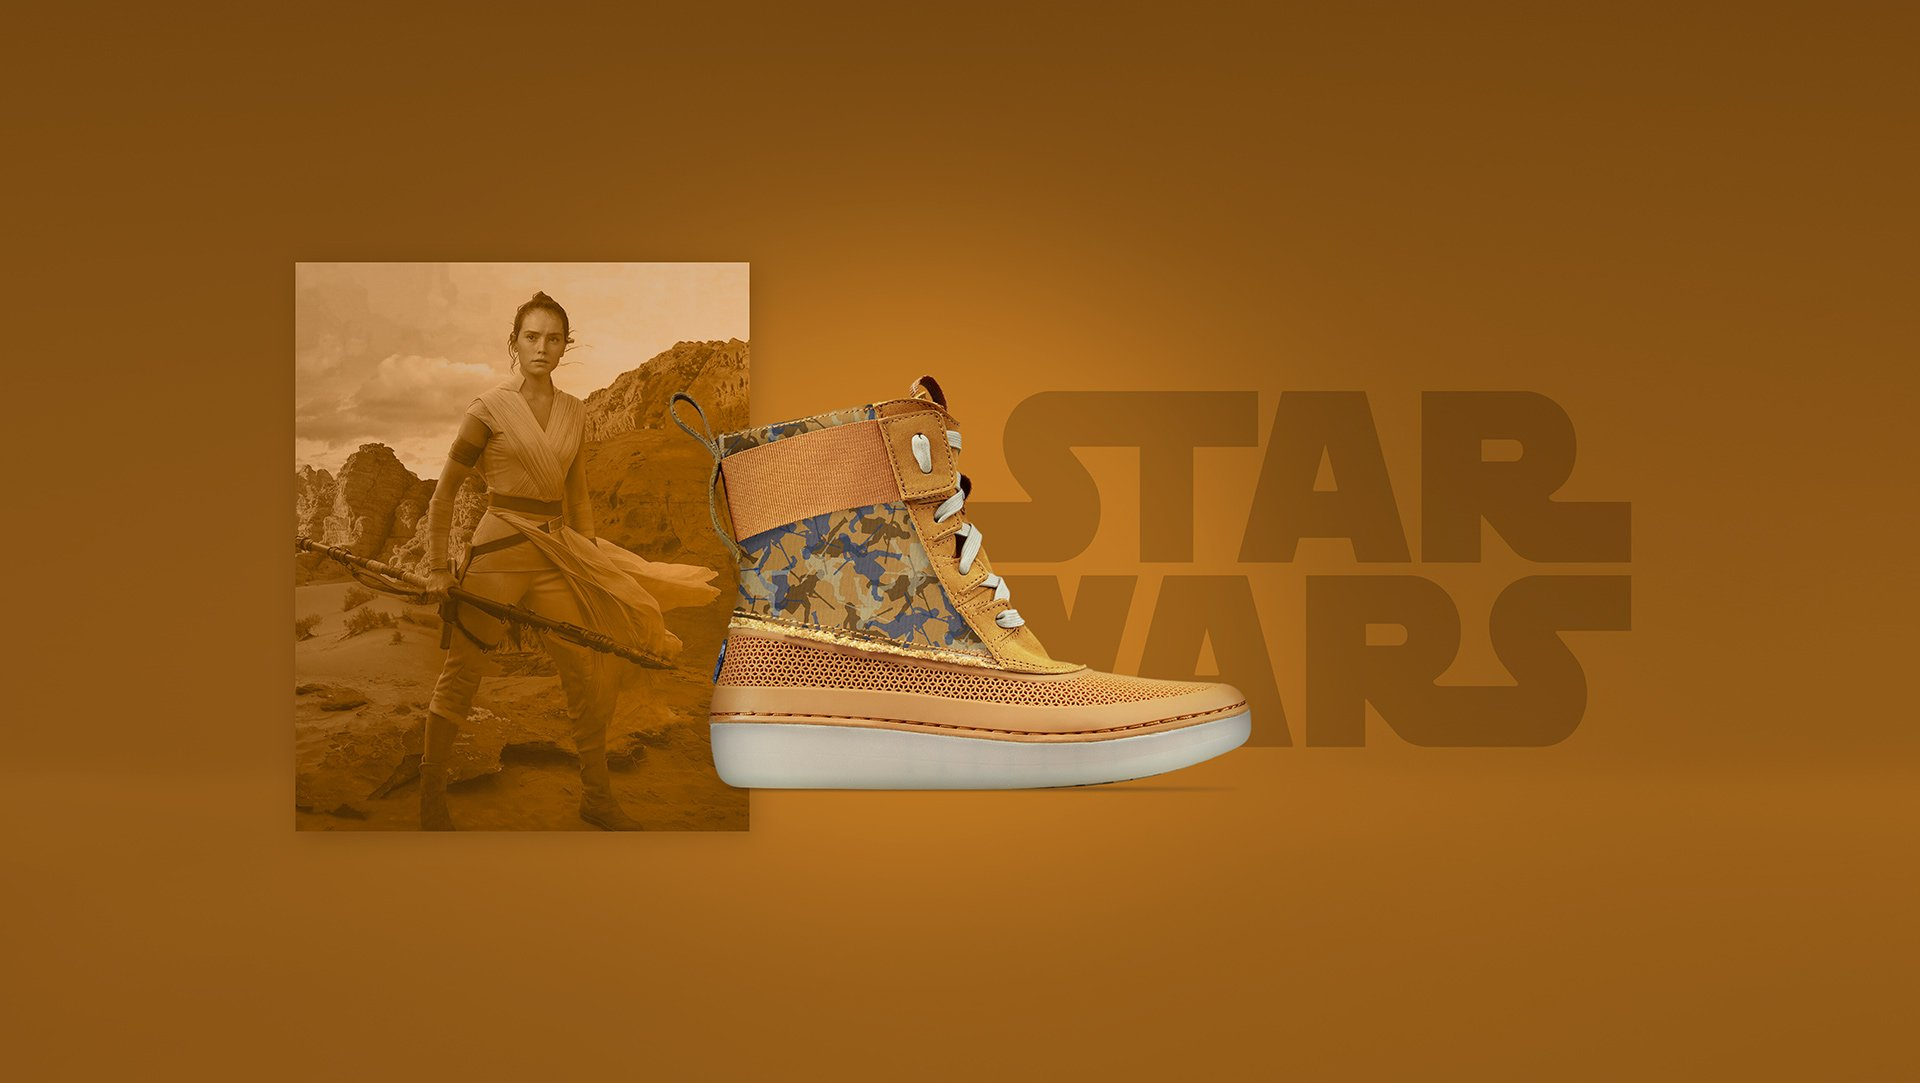 Product Photo of a Clarks, Star Wars collab.